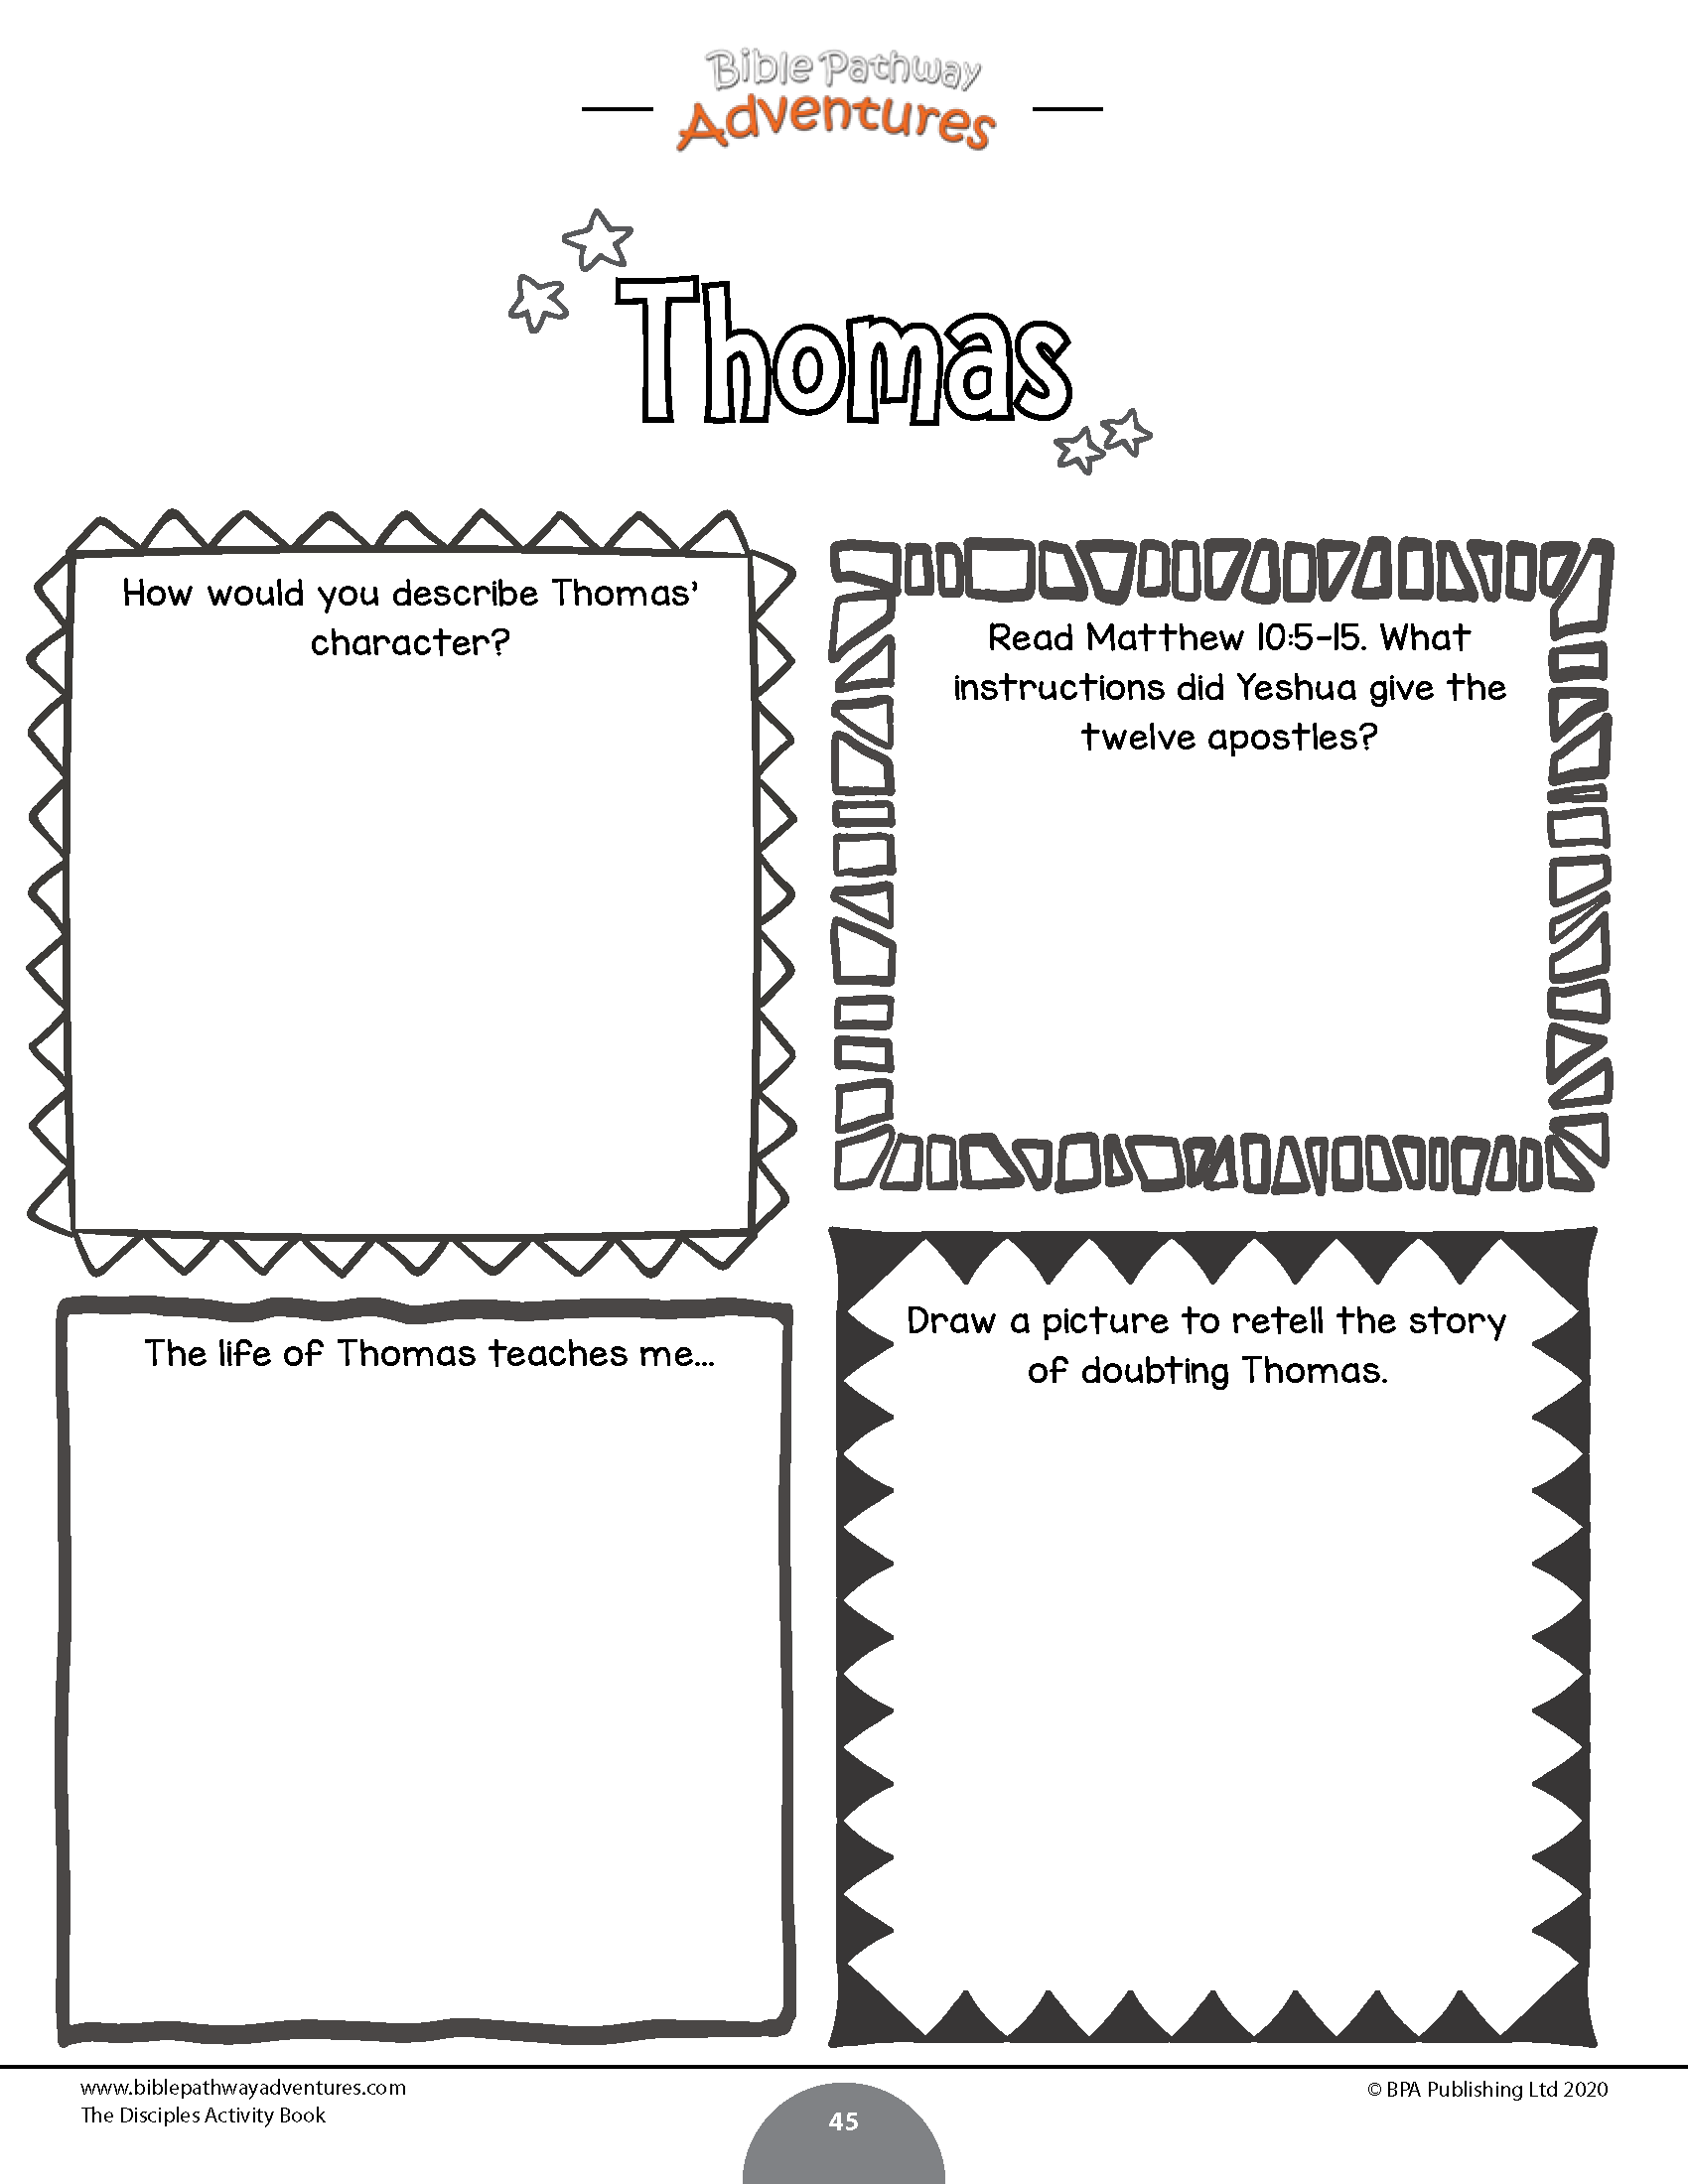 The 12 Disciples Activity Book